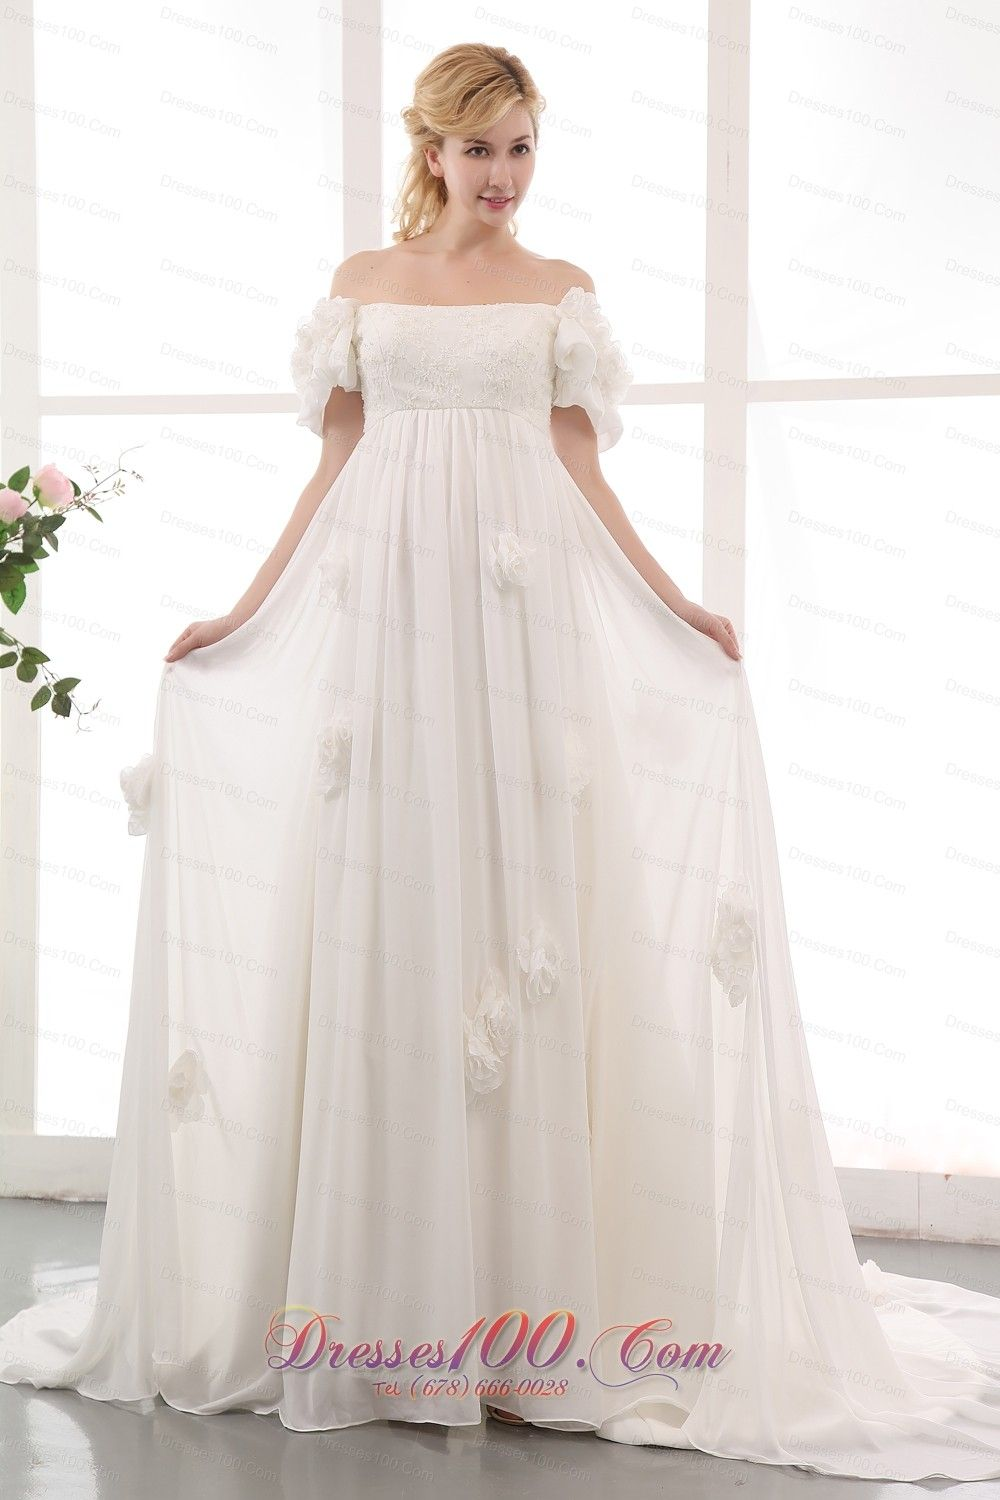 Elegant Wedding Dress In Bakersfield Ca Wedding Gown Bridal Gown